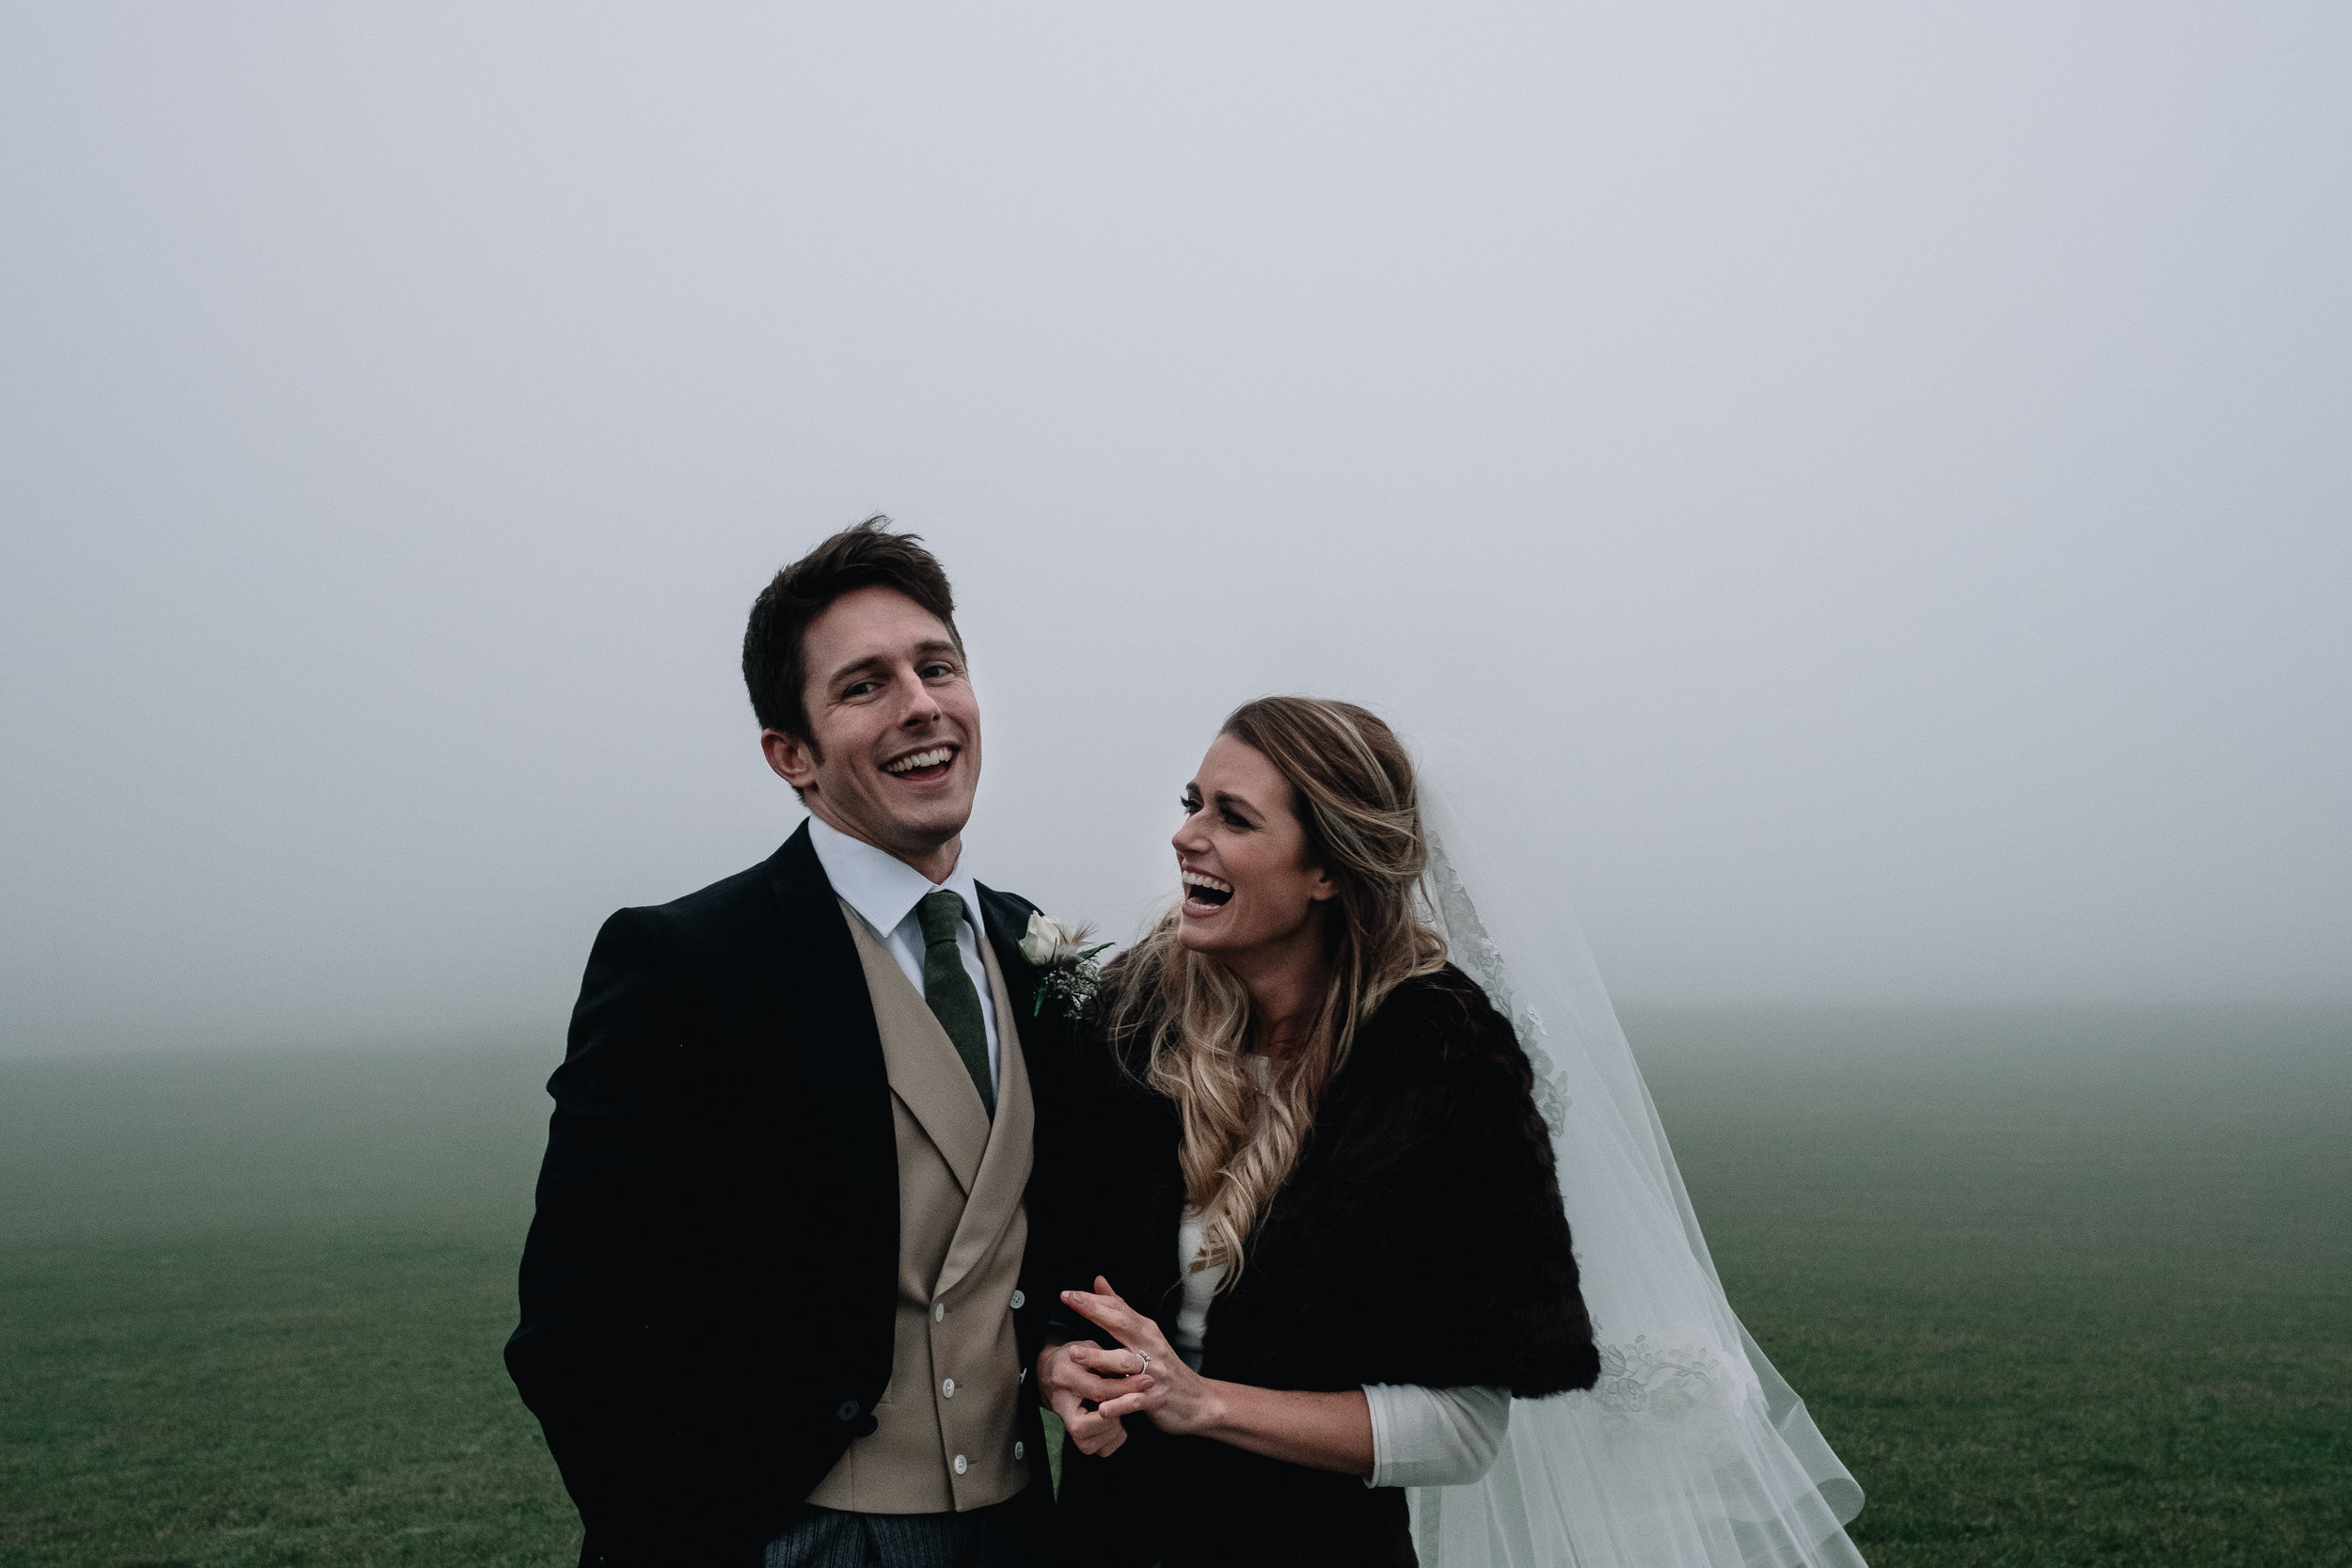 Bride and groom standing in the middle of a field